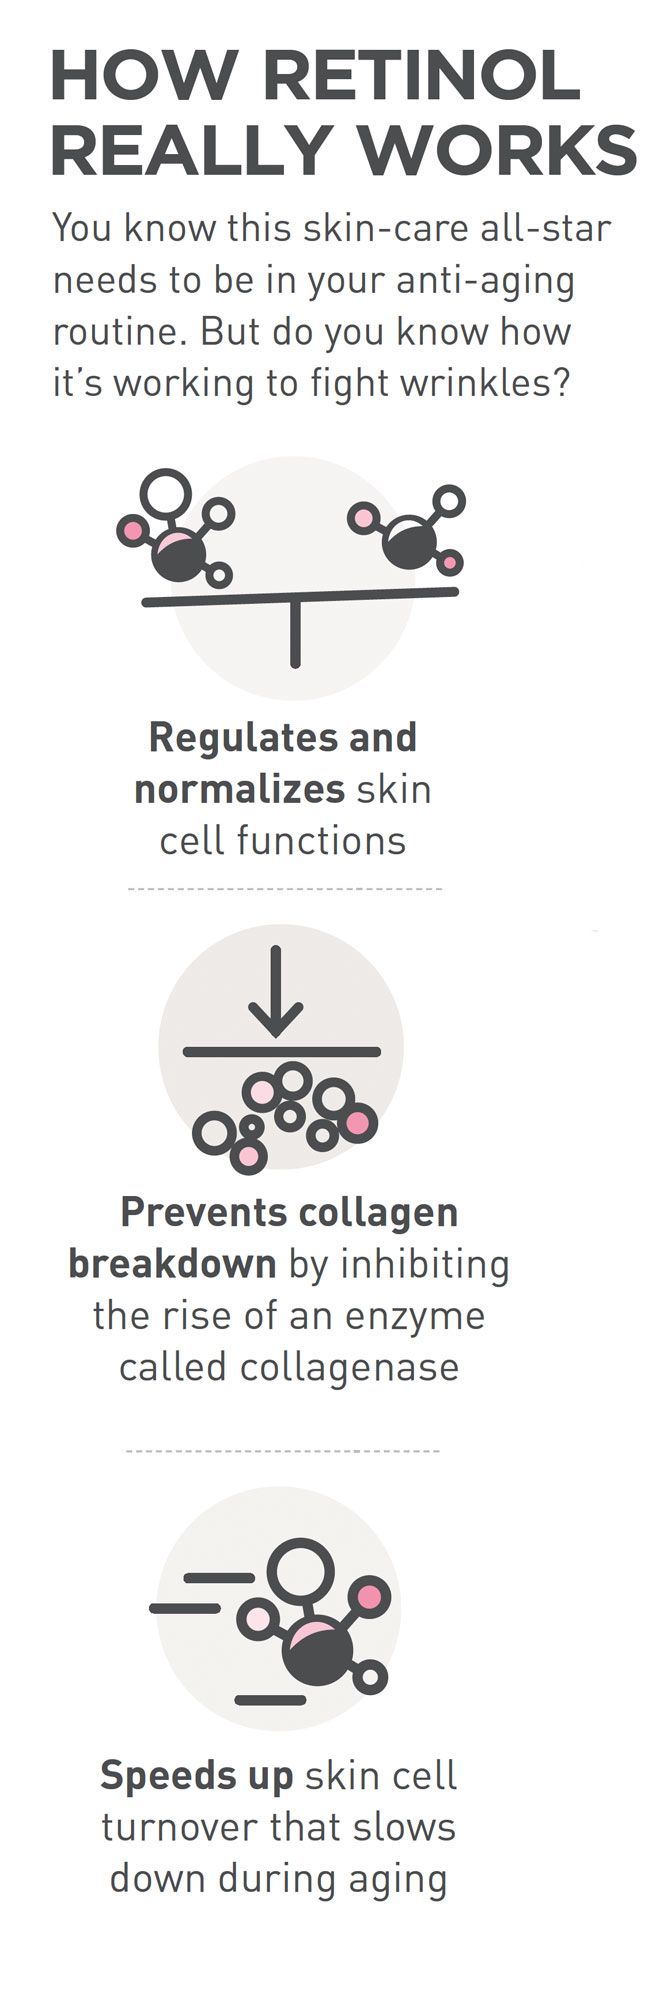 How Retinol Really Works! #retinol #skincare #cosmetics